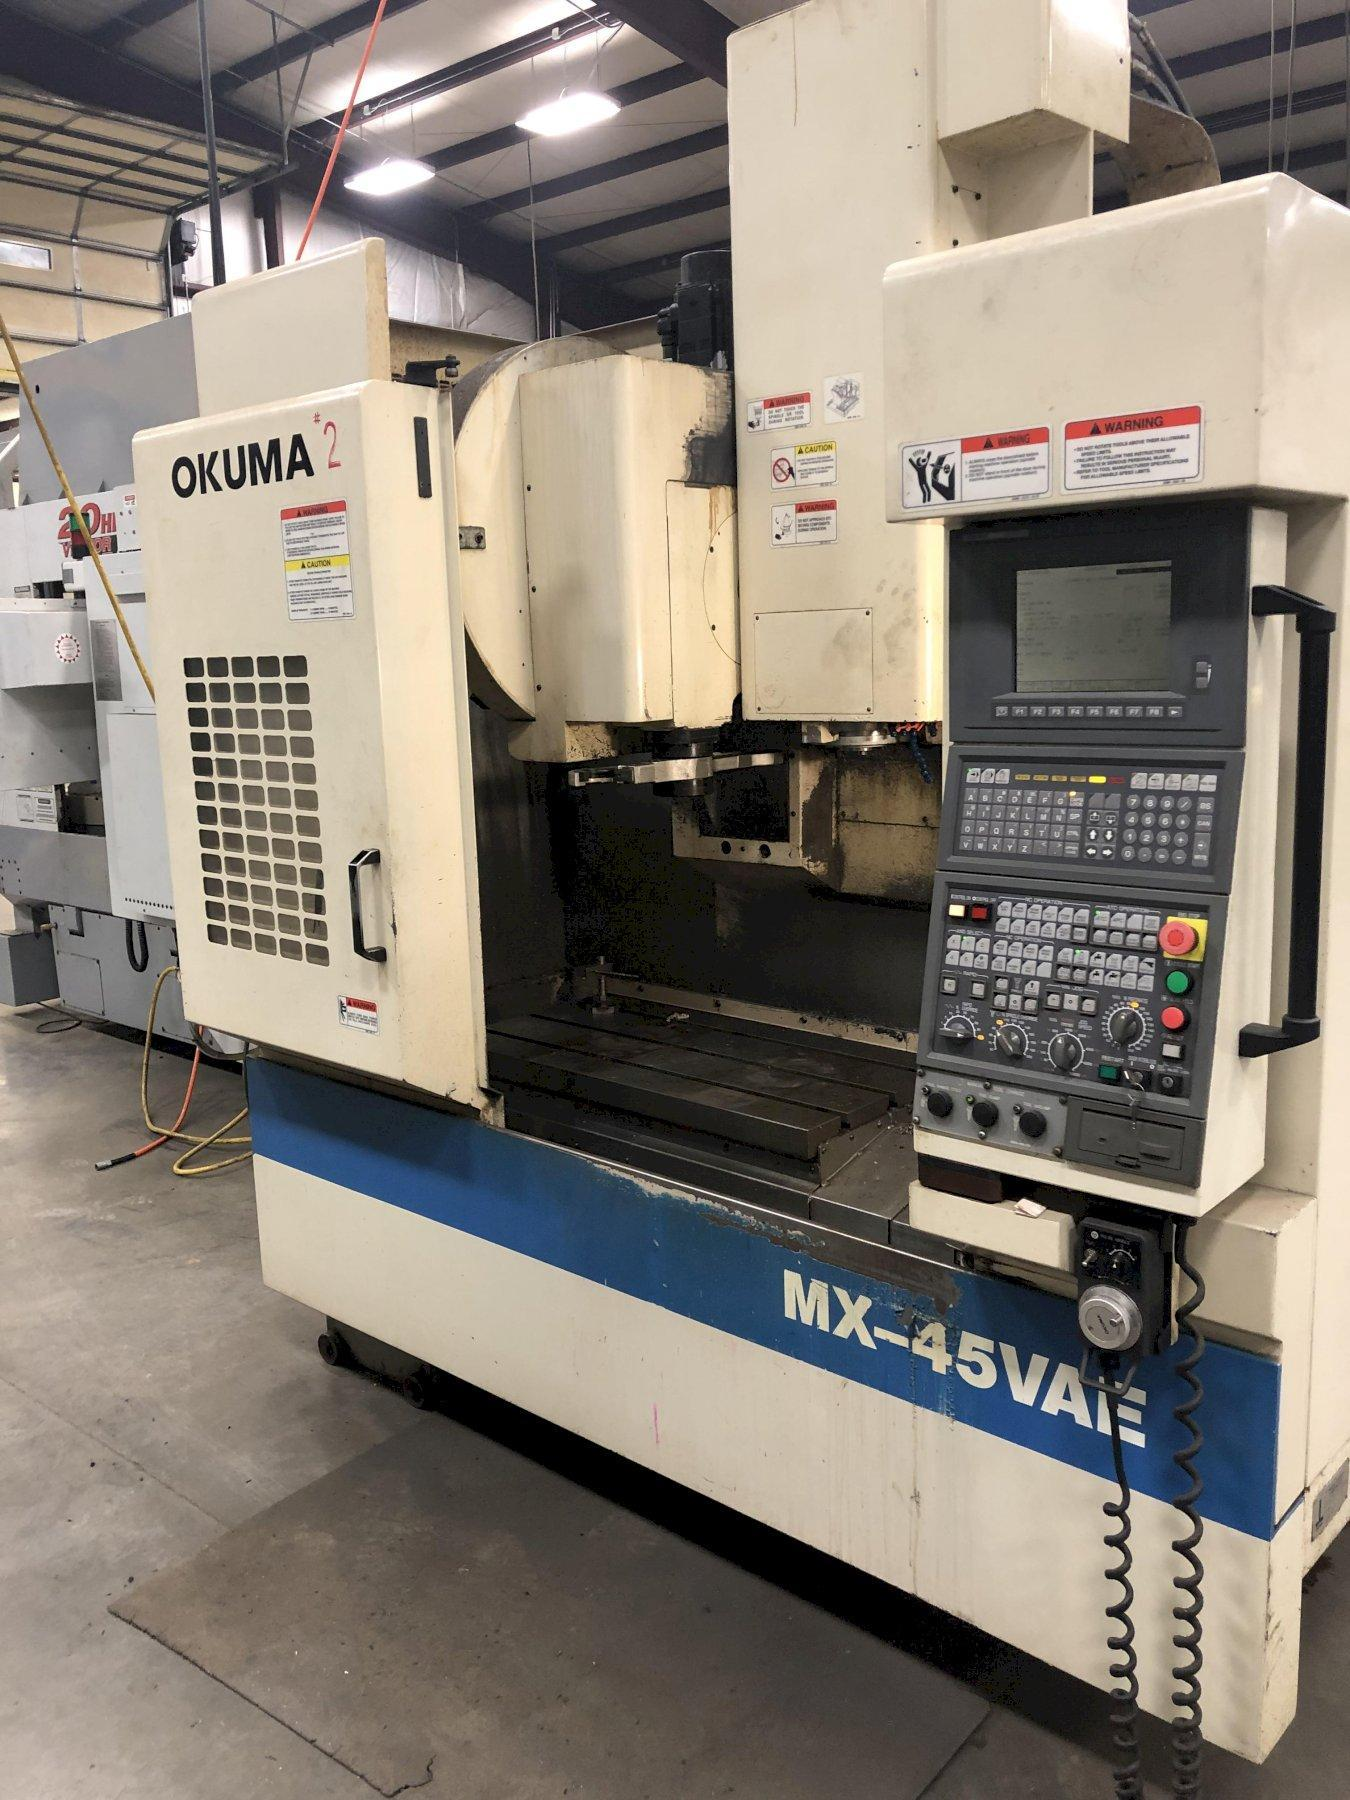 Okuma MX-45 VAE Vertical Machining Center